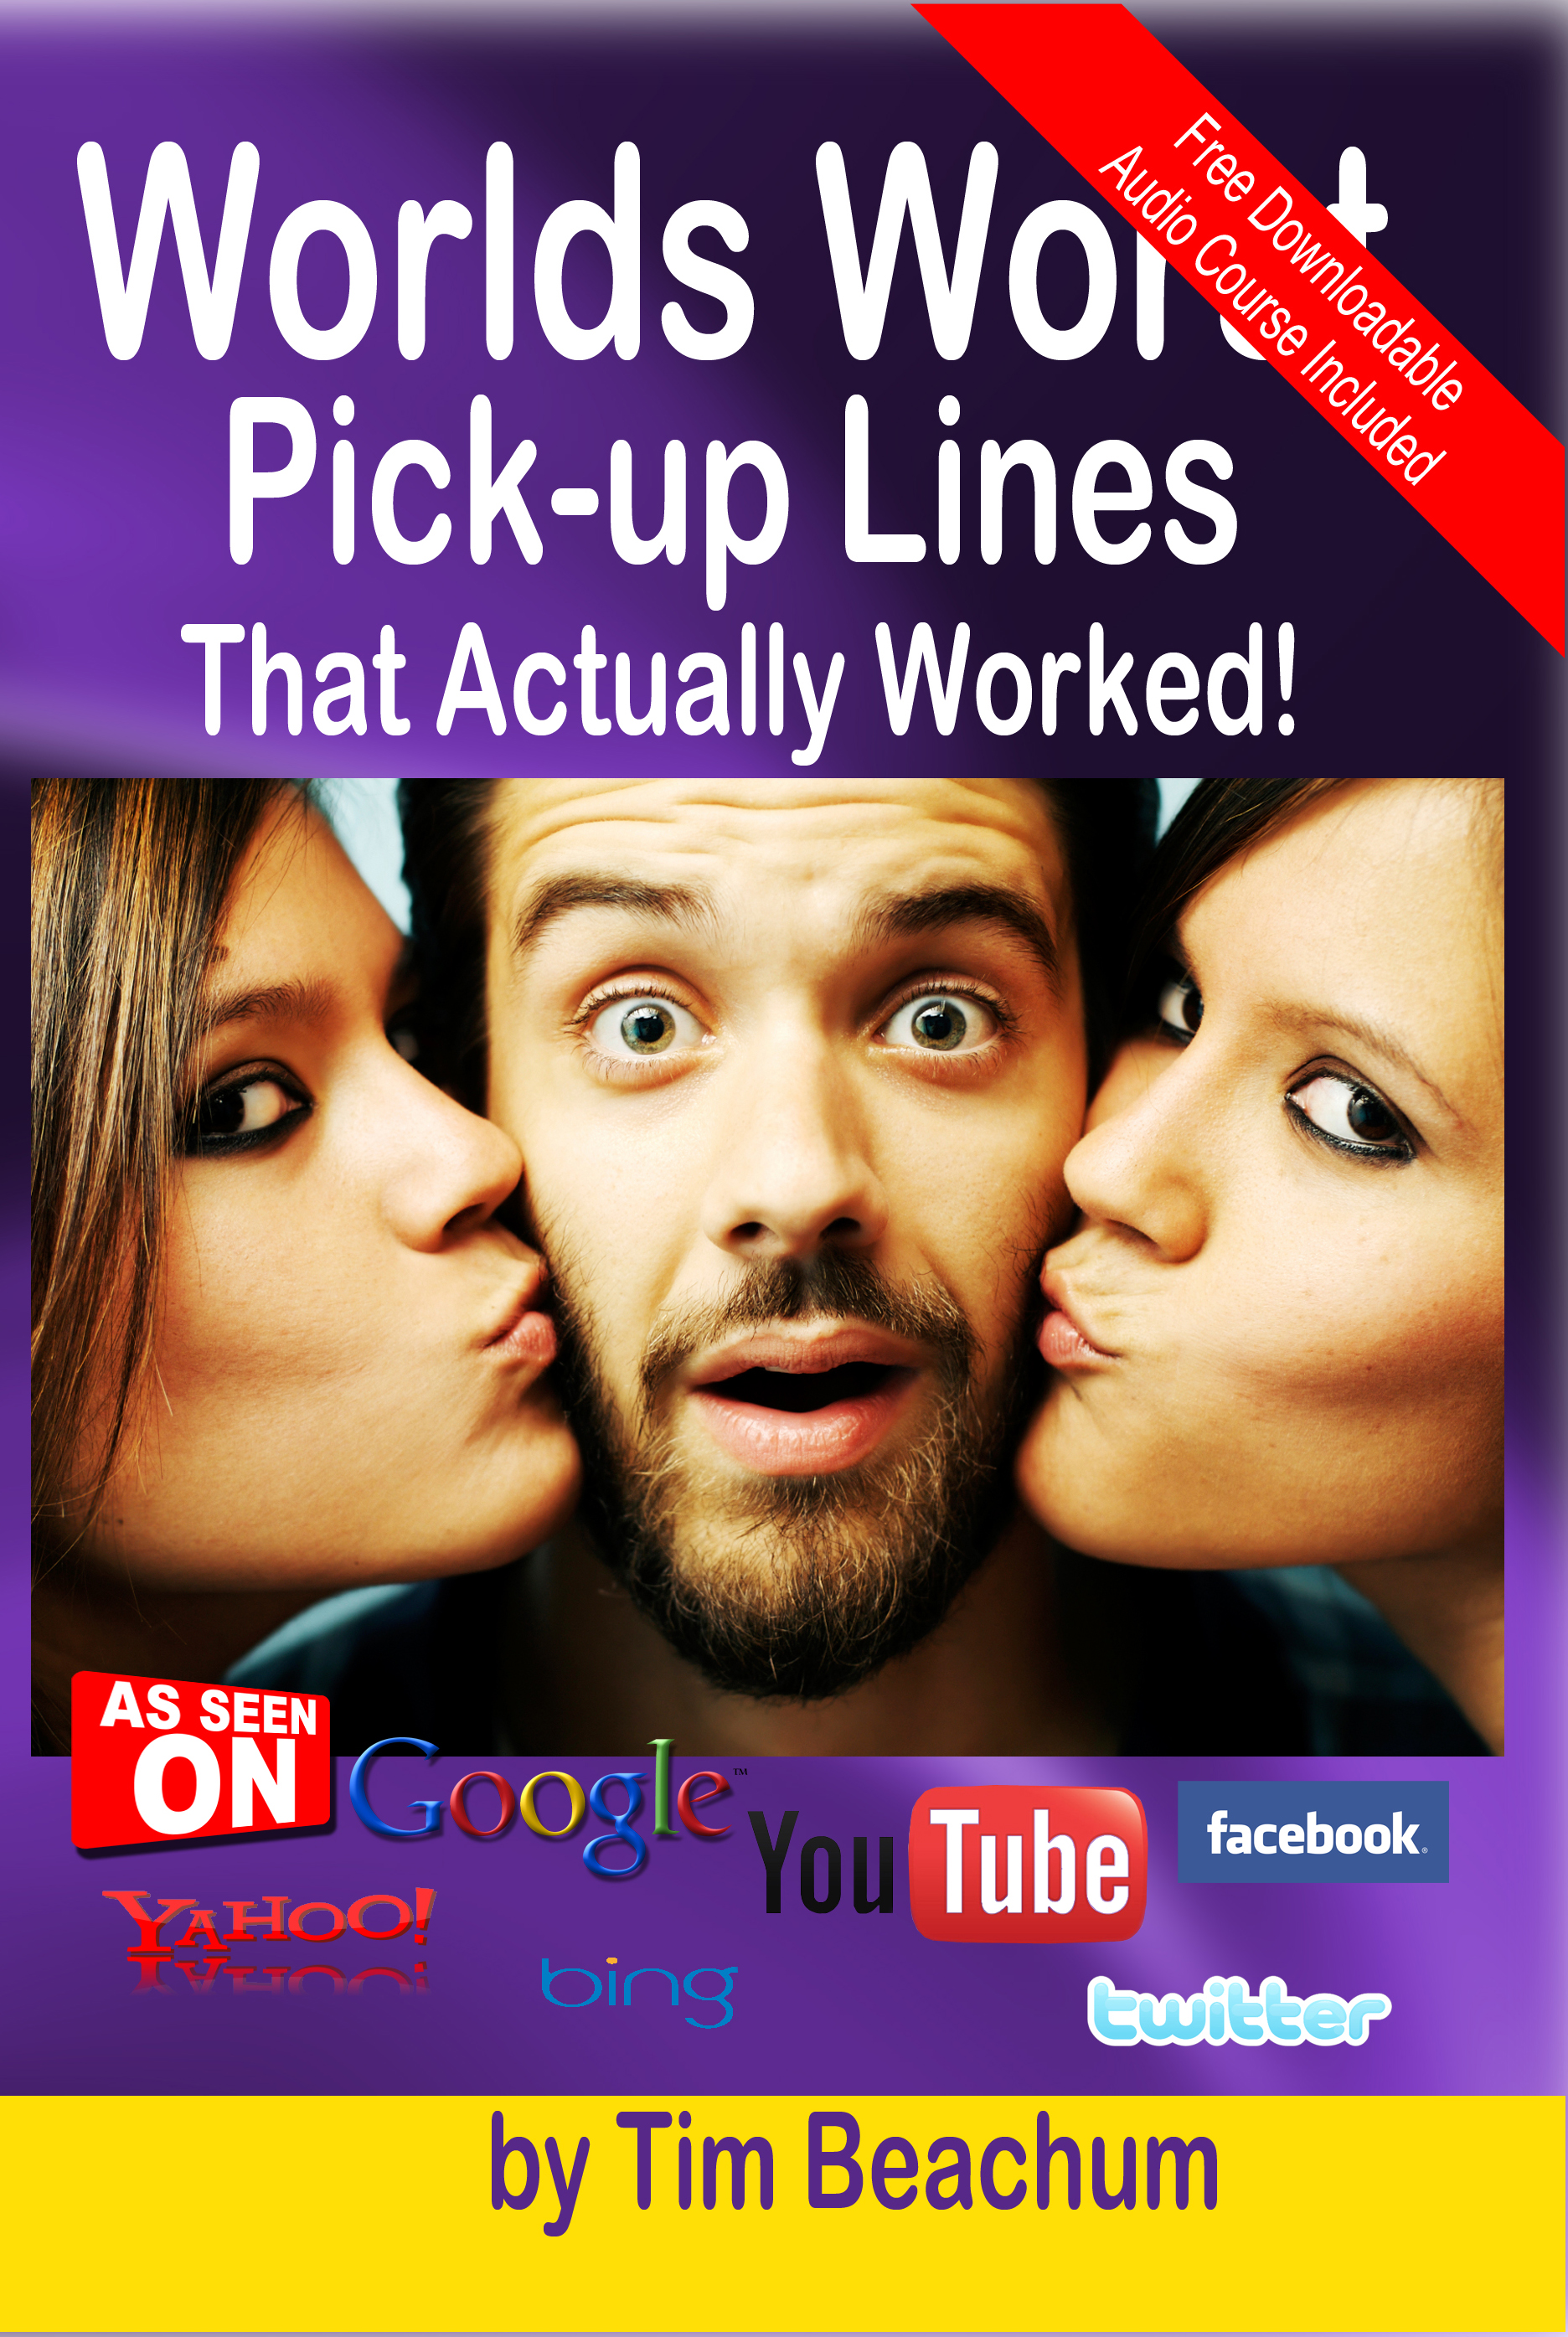 The Worlds Worst Pickup Lines - That Actually Worked, an Ebook by Tim  Beachum